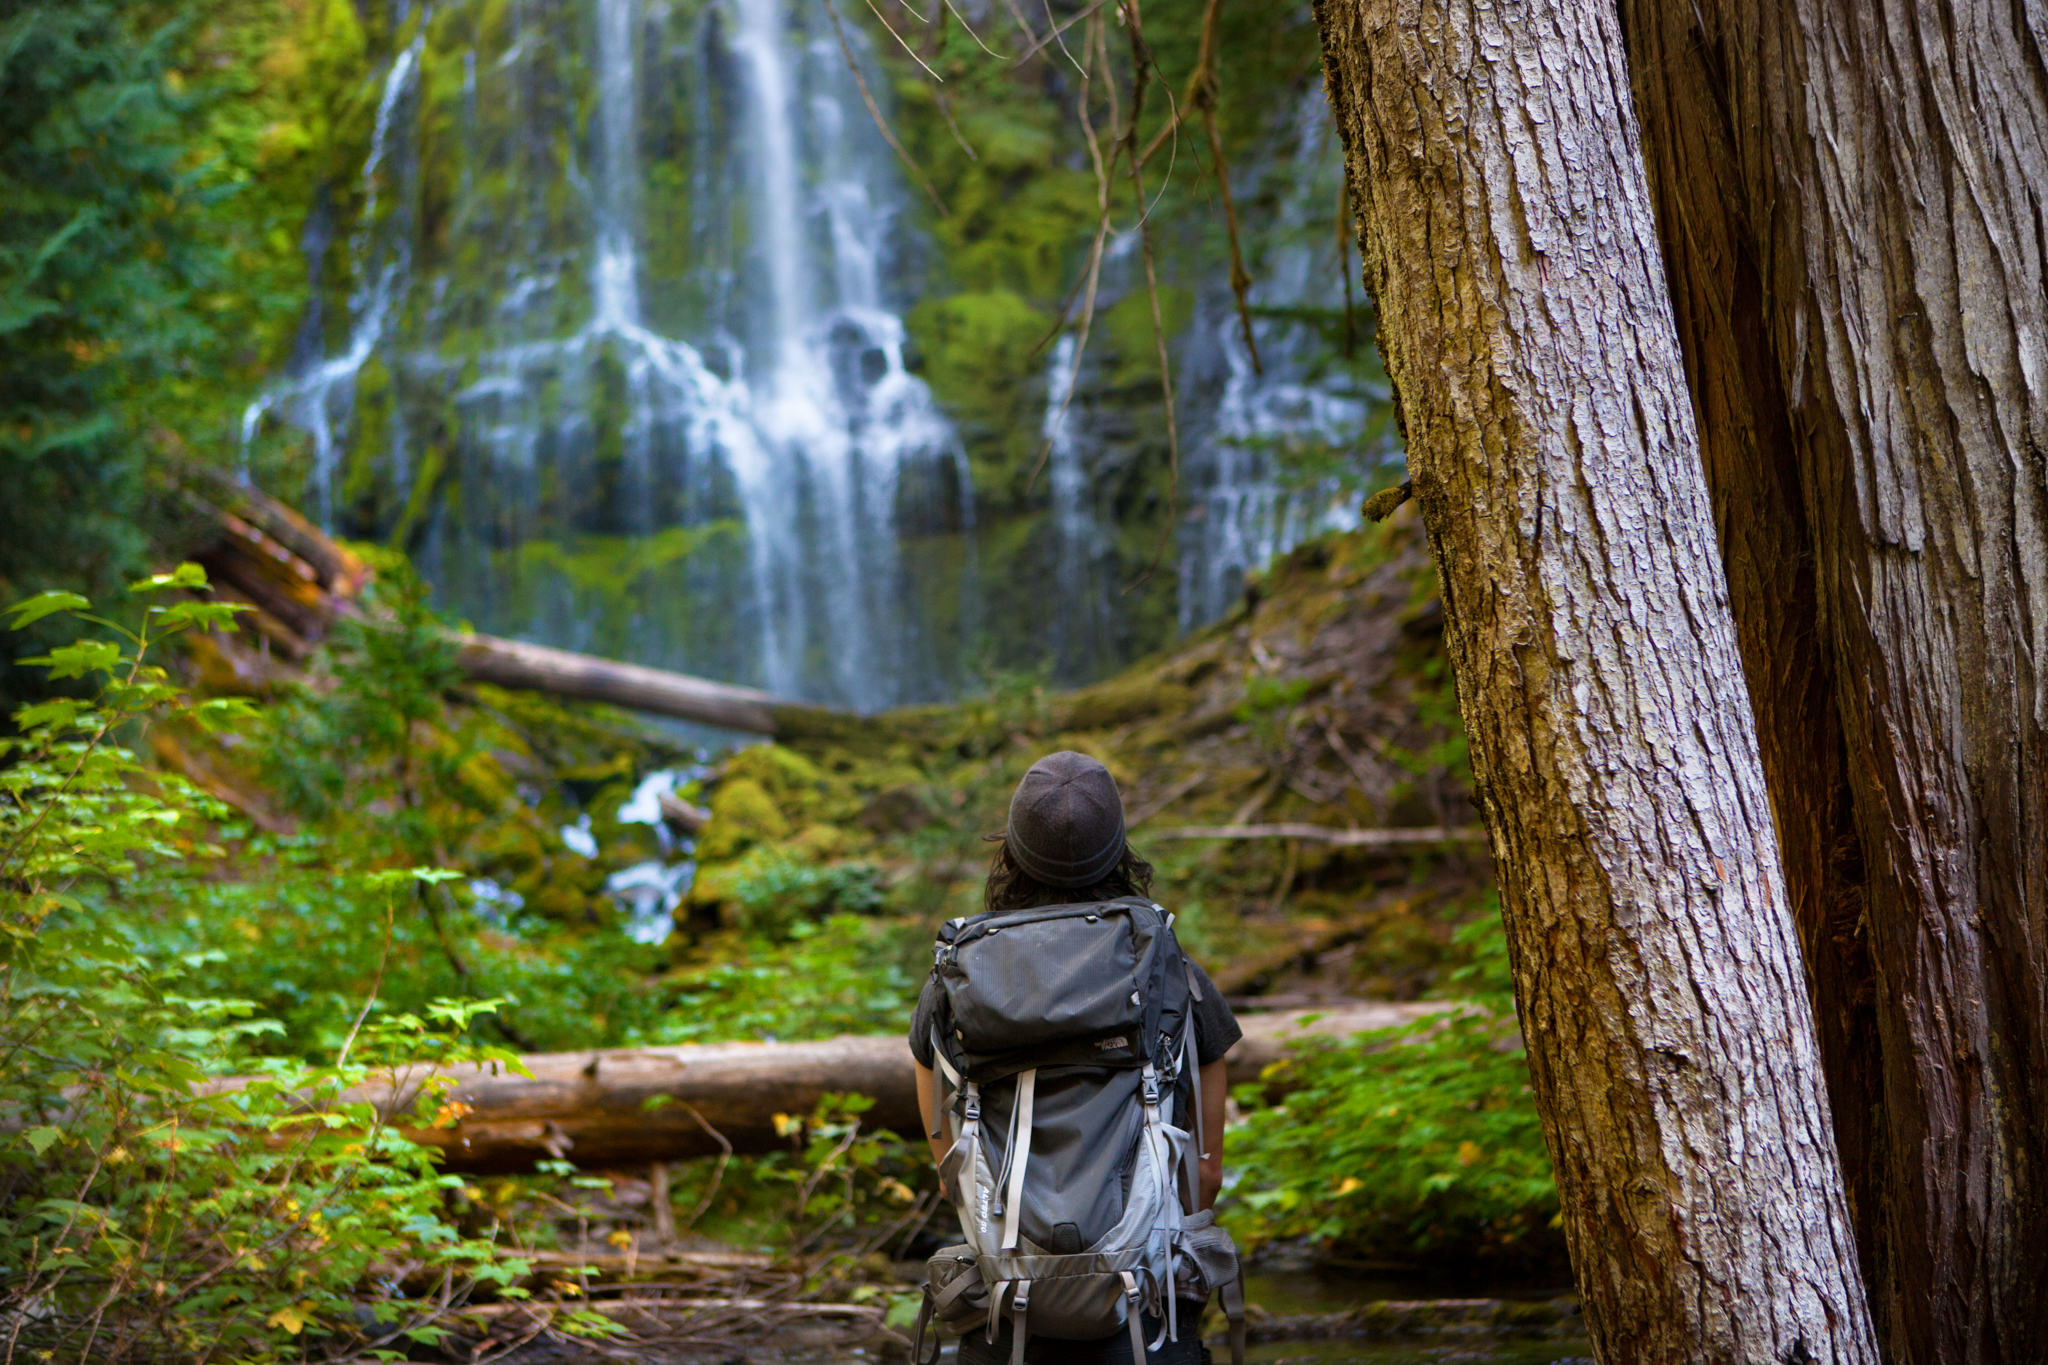 Viewing Proxy Falls from afar.